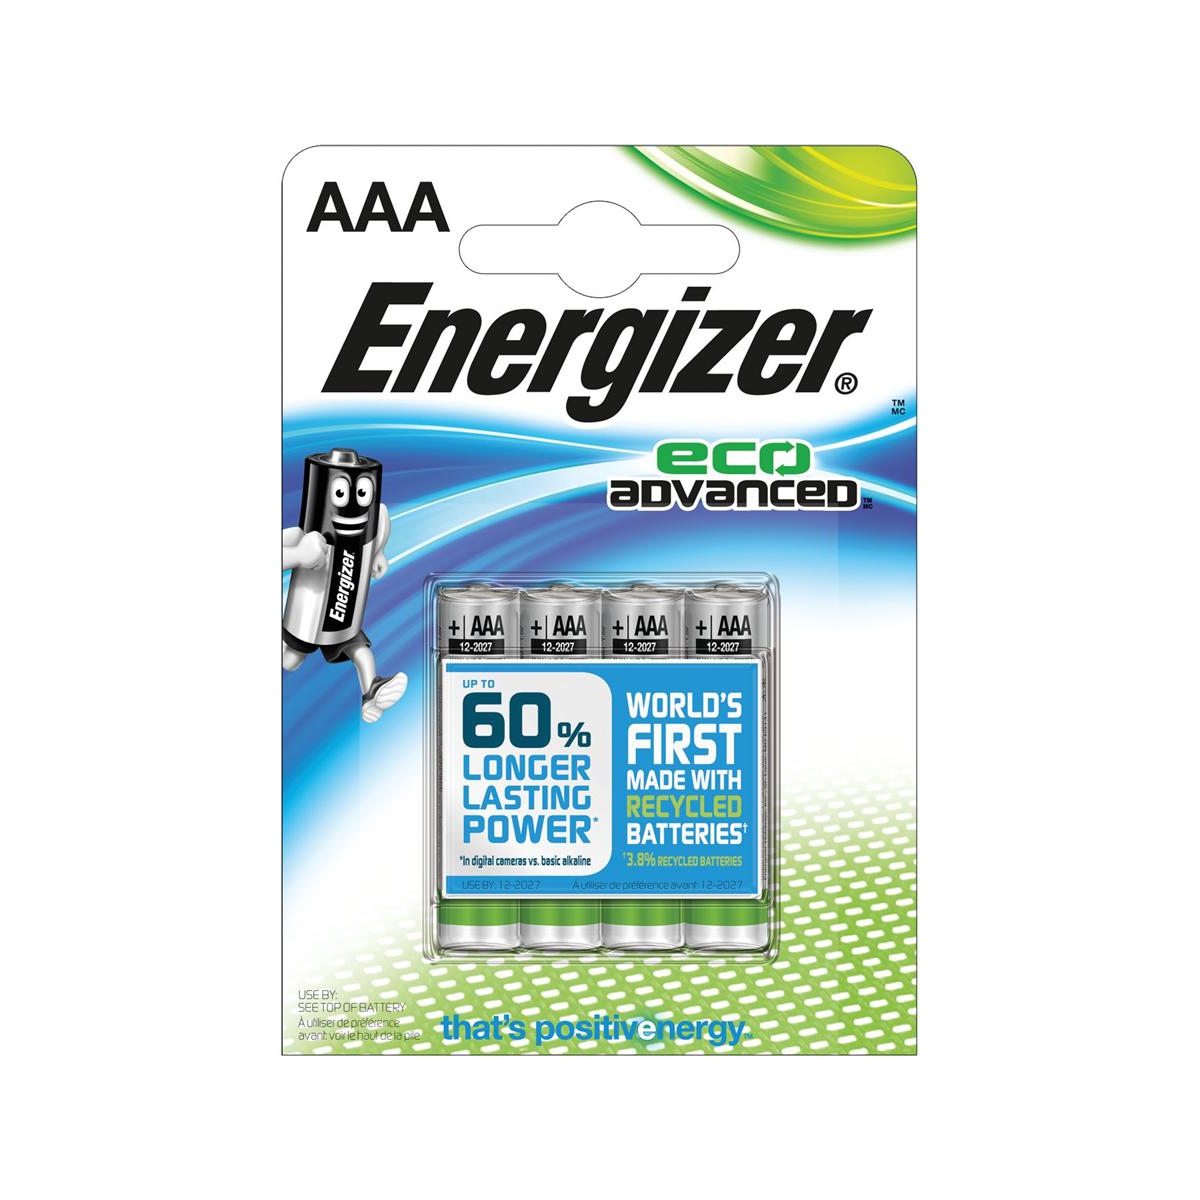 Energizer Eco Advance Batteries AAA / E92 Ref E300128100 Pack 4